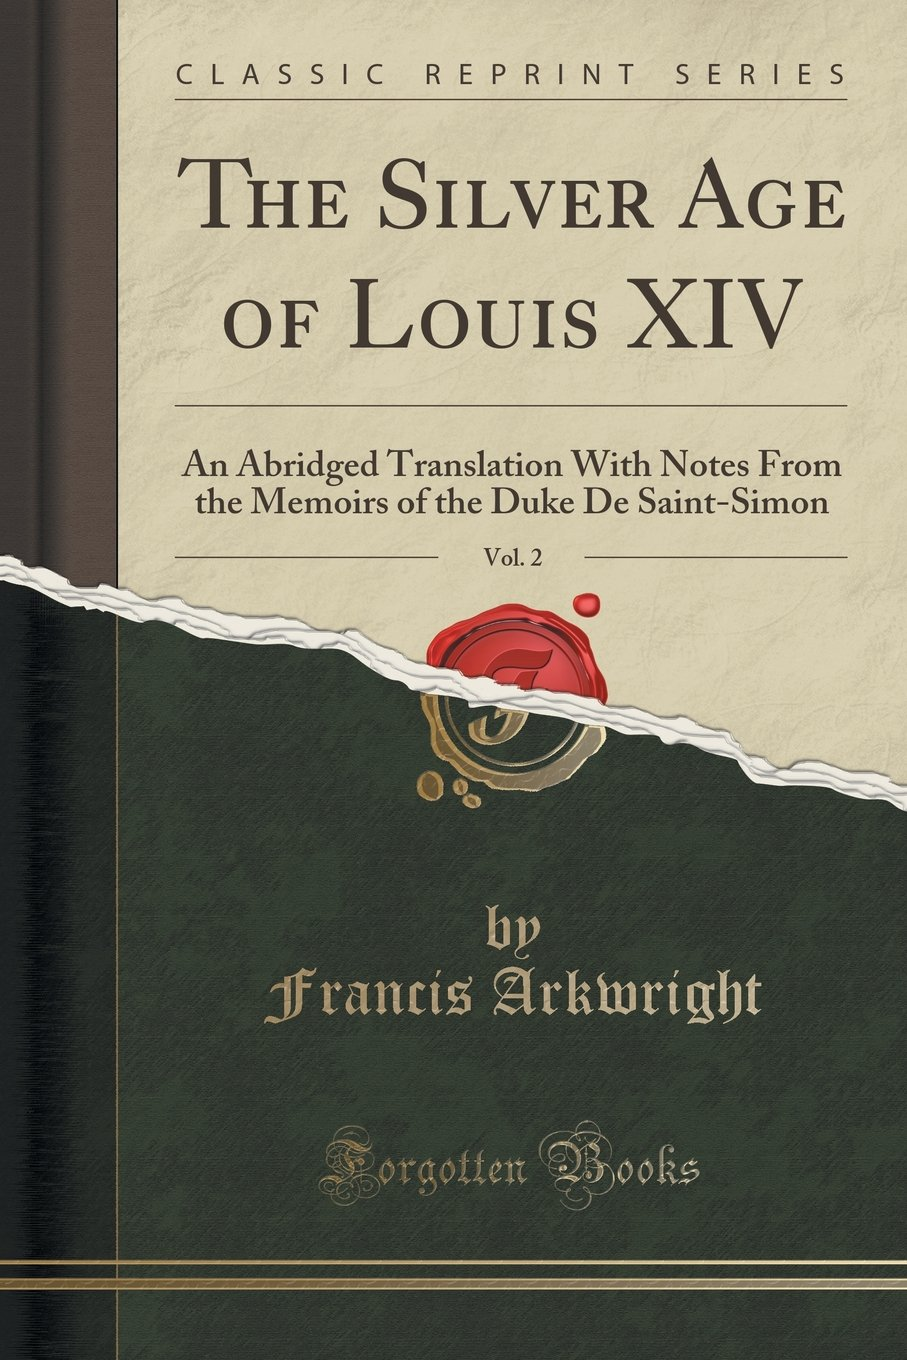 Download The Silver Age of Louis XIV, Vol. 2: An Abridged Translation With Notes From the Memoirs of the Duke De Saint-Simon (Classic Reprint) pdf epub